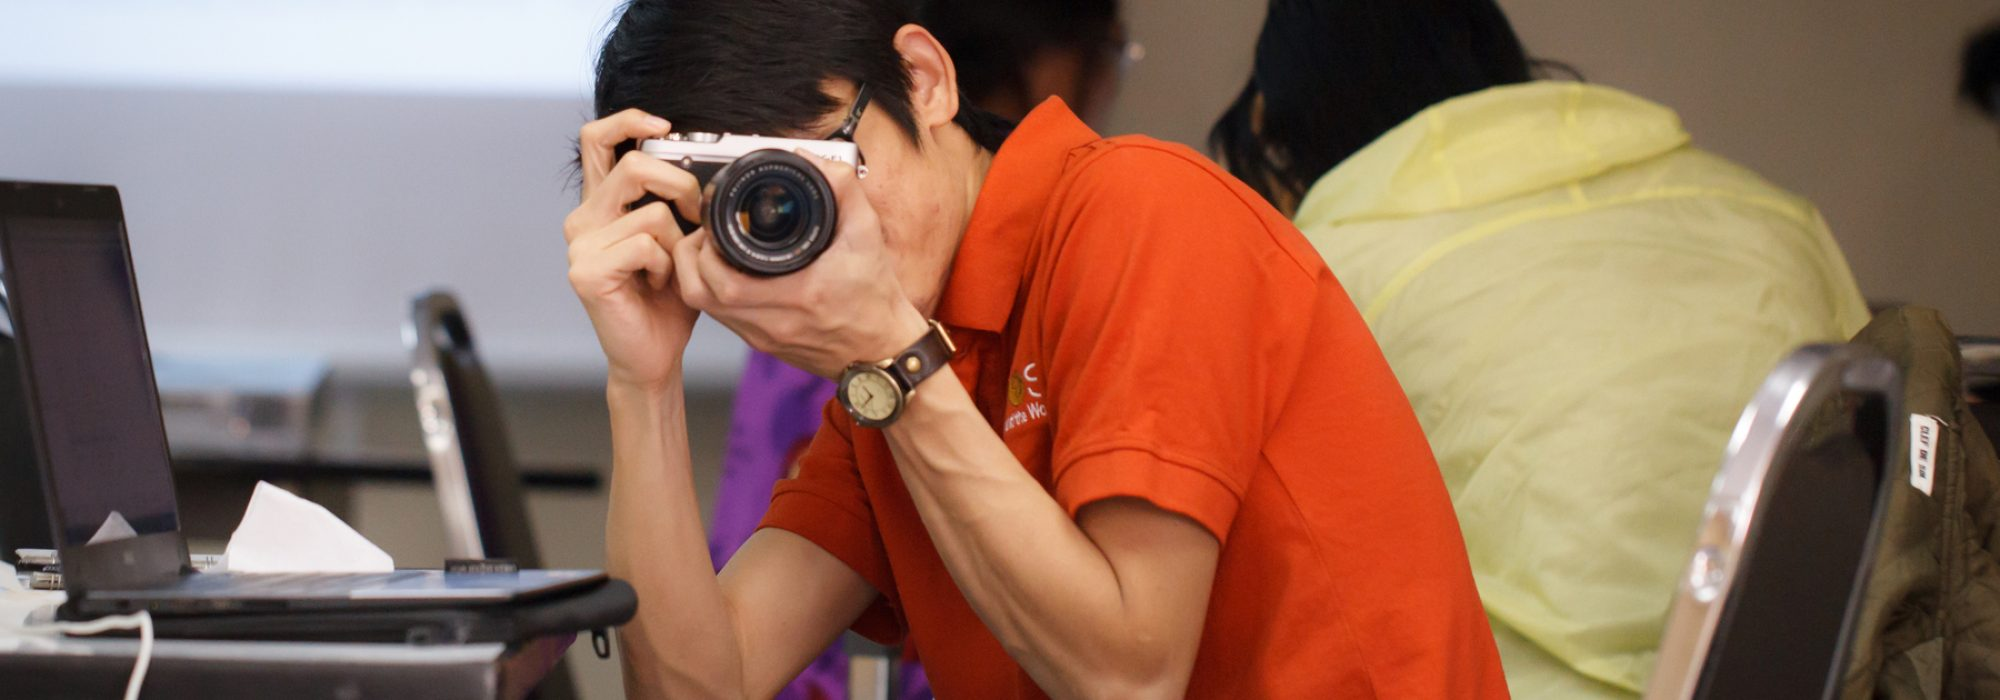 Opel Tannumsaeng takes a picture during a communications workshop in Bangkok Thailand.